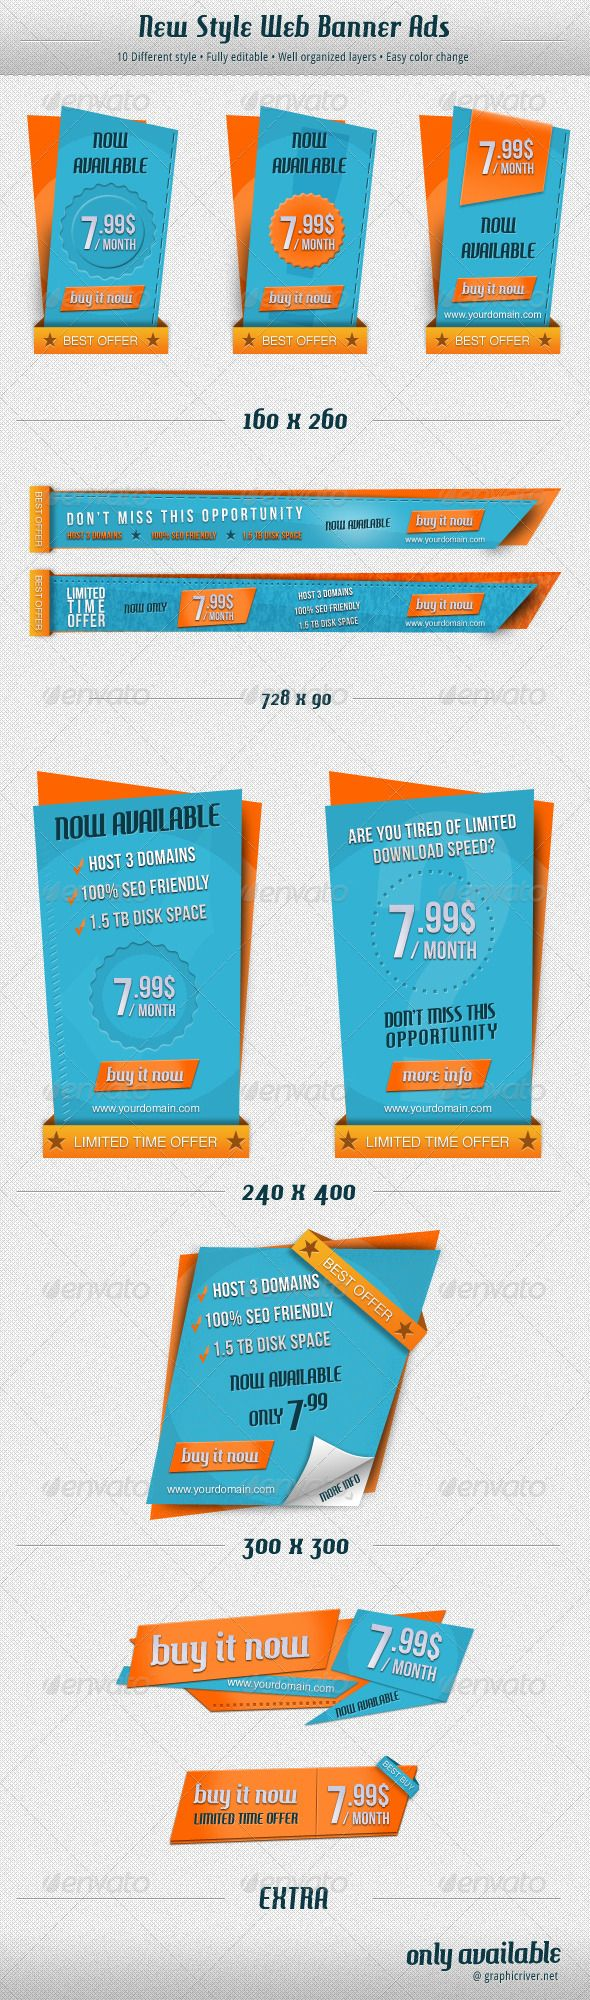 New Style Web Banner Ads